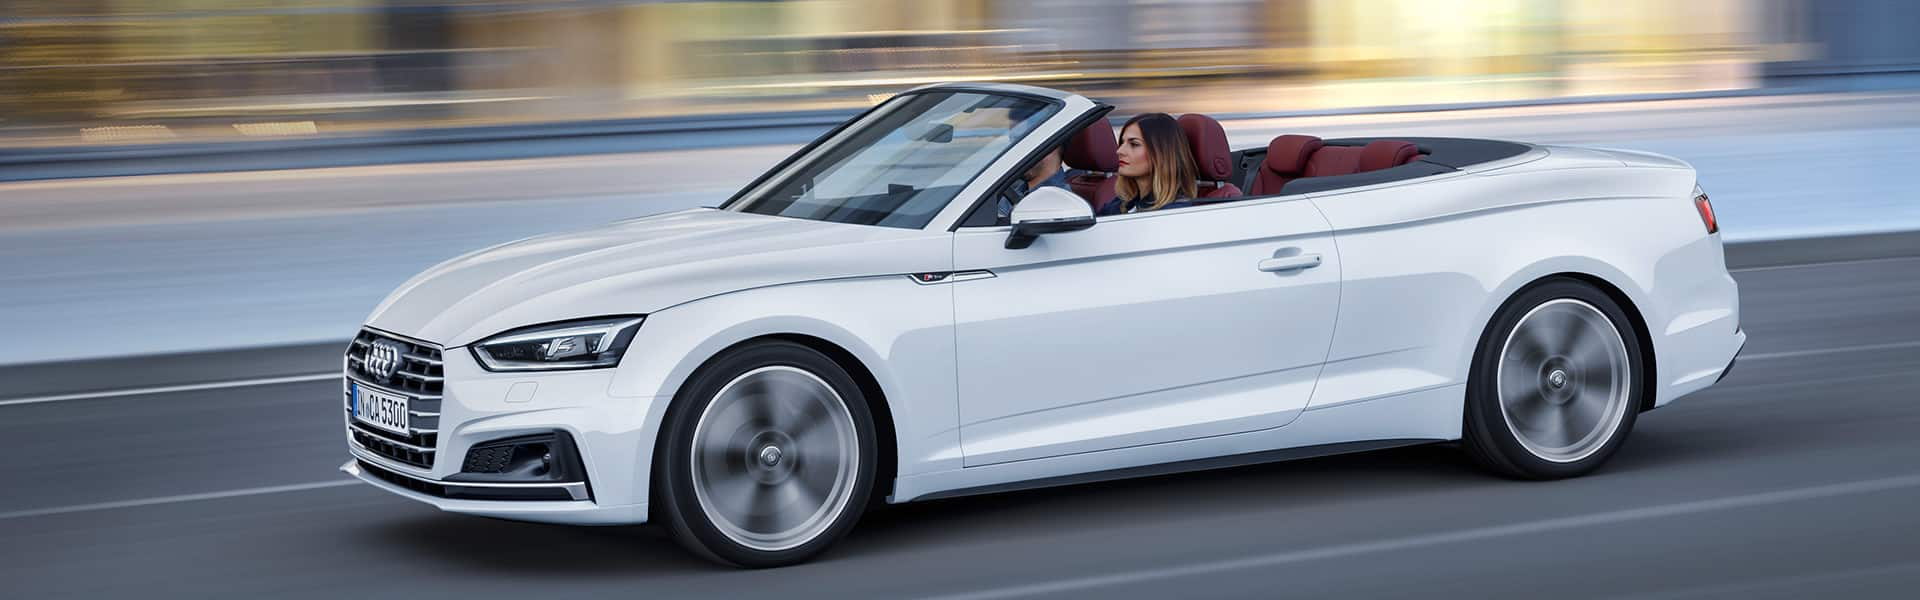 a5 cabriolet 2019 a5 audi ireland. Black Bedroom Furniture Sets. Home Design Ideas